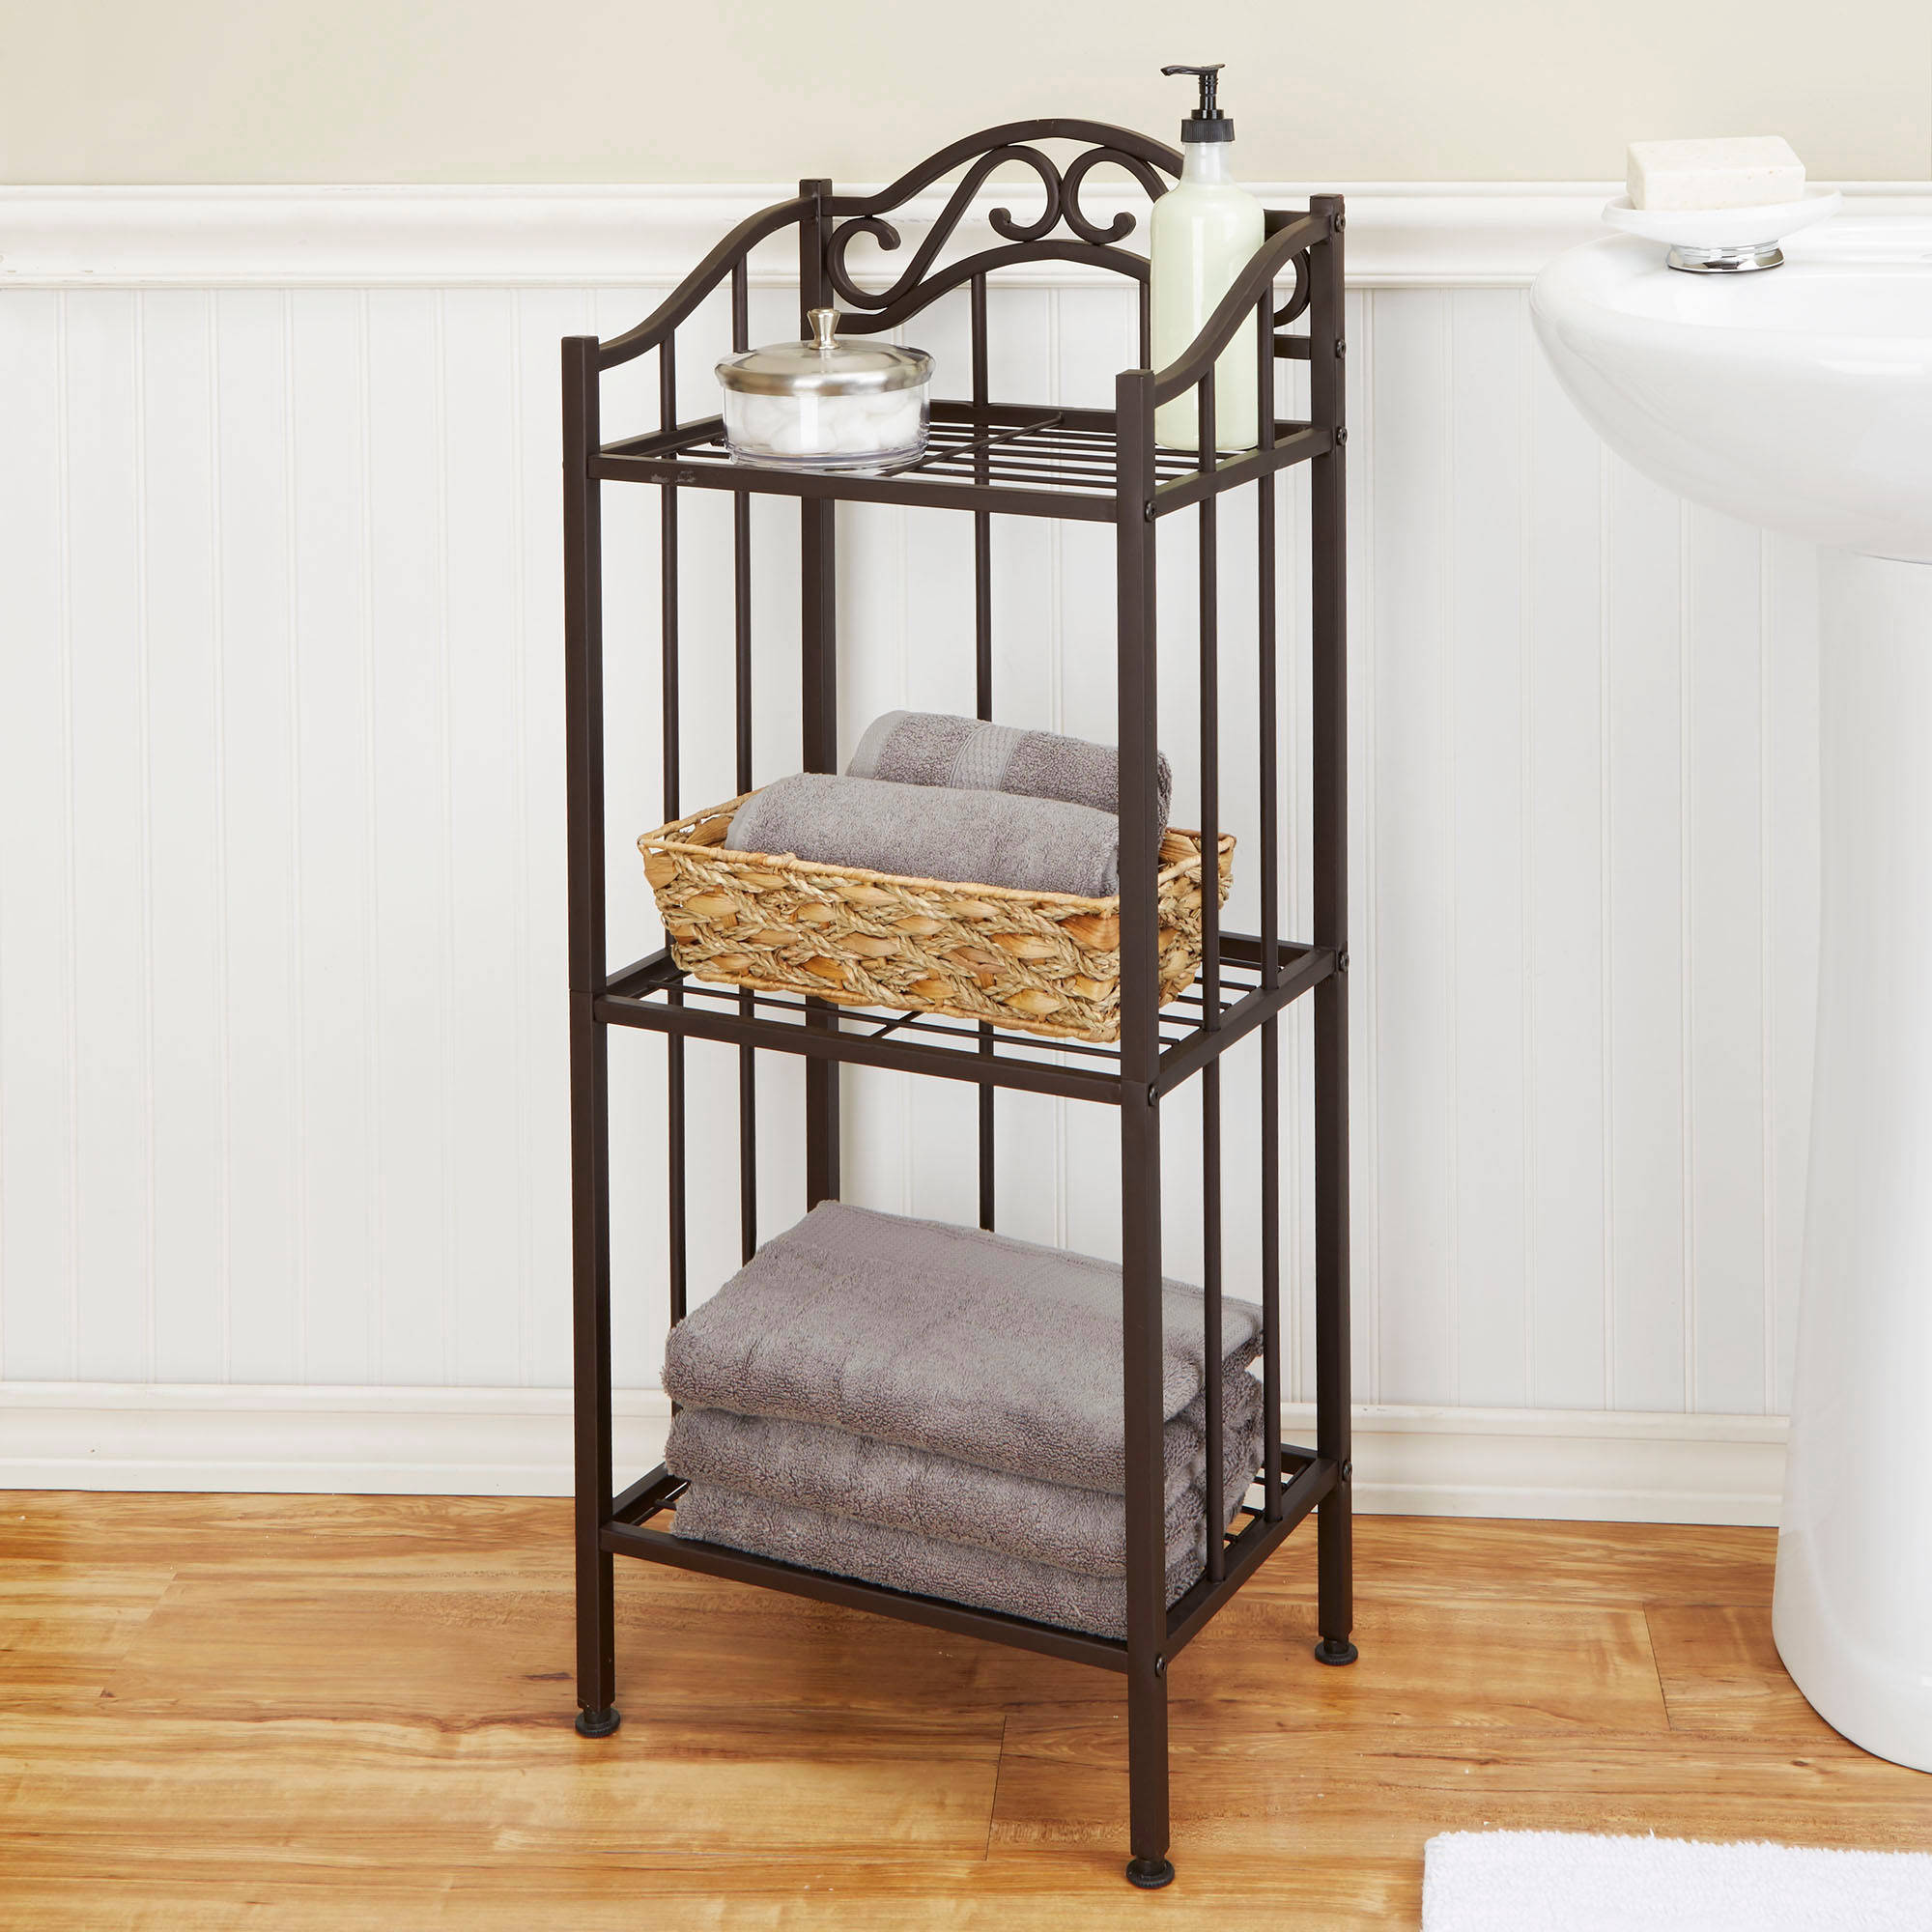 Chapter Bathroom Floor Shelf, Bronze